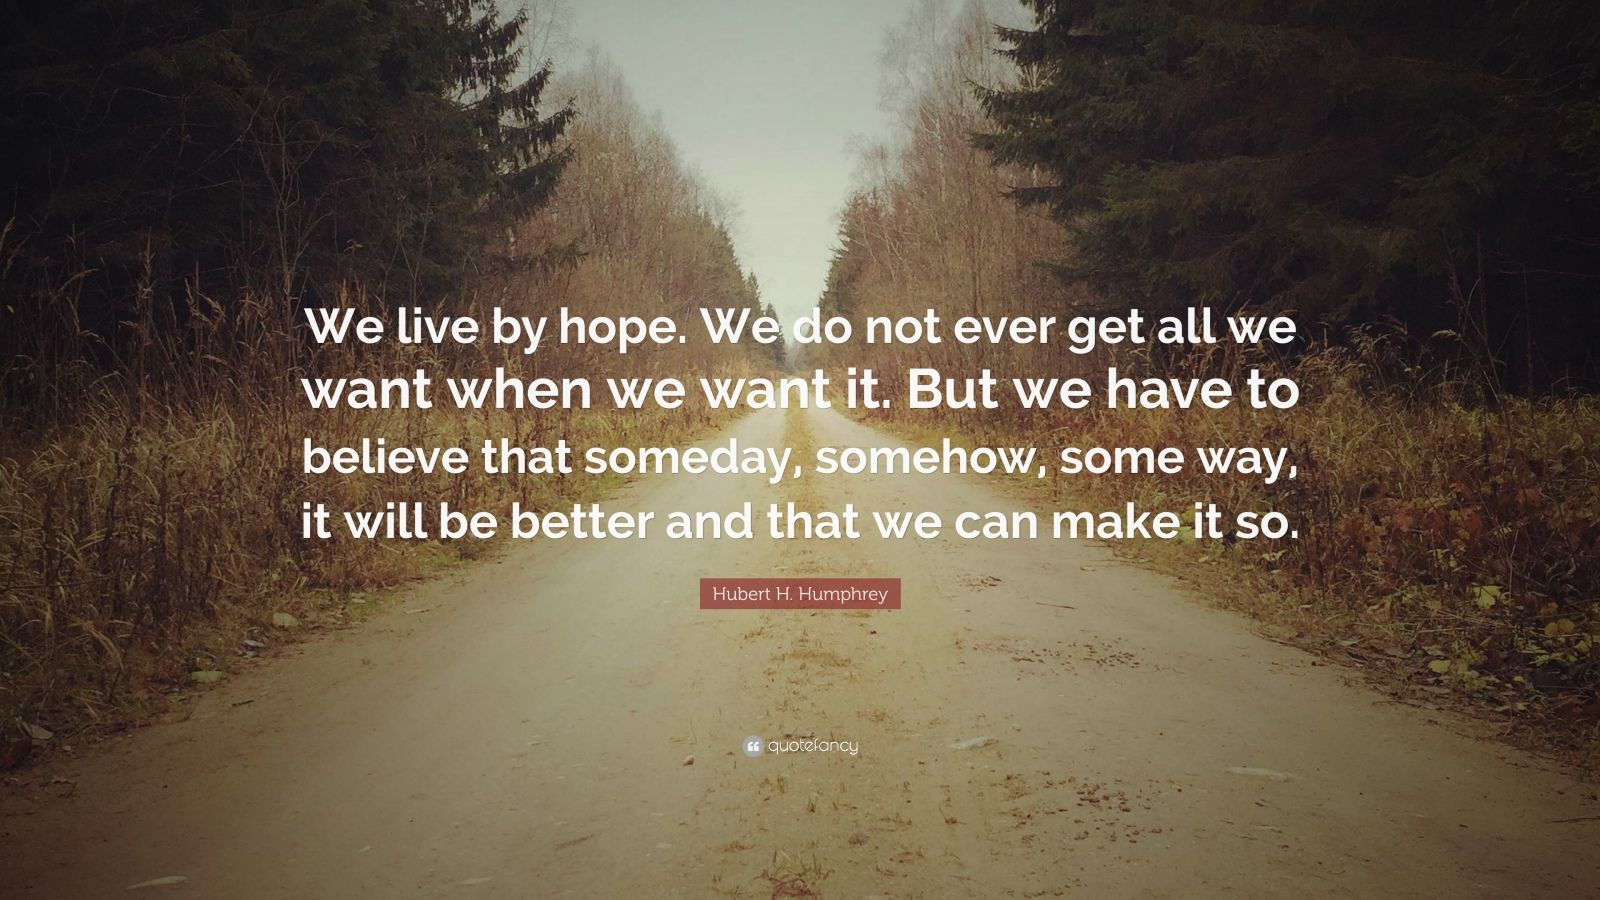 """Hubert H. Humphrey Quote: """"We live by hope. We do not ever get all we want when we want it. But we have to believe that someday, somehow, some way, it will be better and that we can make it so."""""""